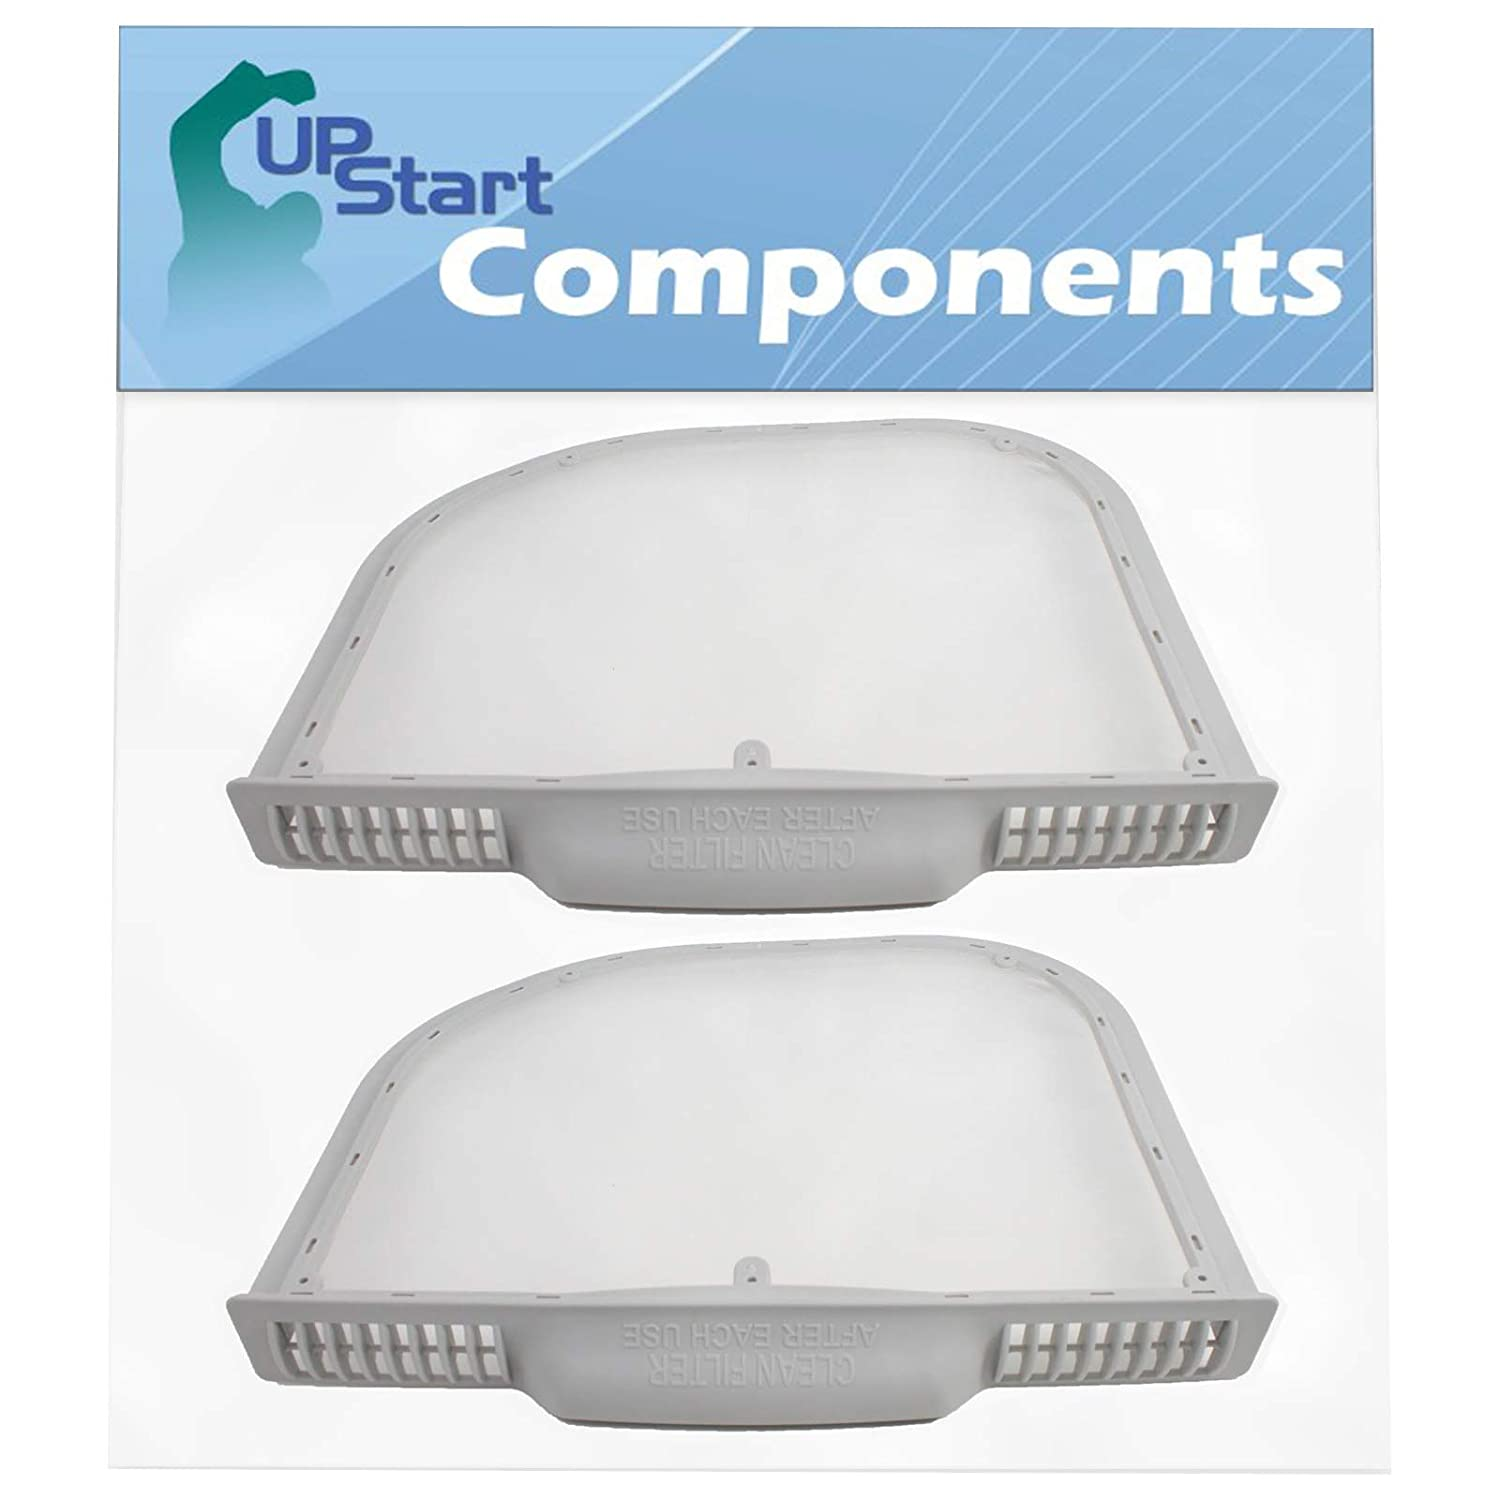 2-Pack 5231EL1001C Dryer Lint Filter Replacement for Kenmore//Sears 796.61512210 Compatible with 5231EL1001C Lint Screen Assembly